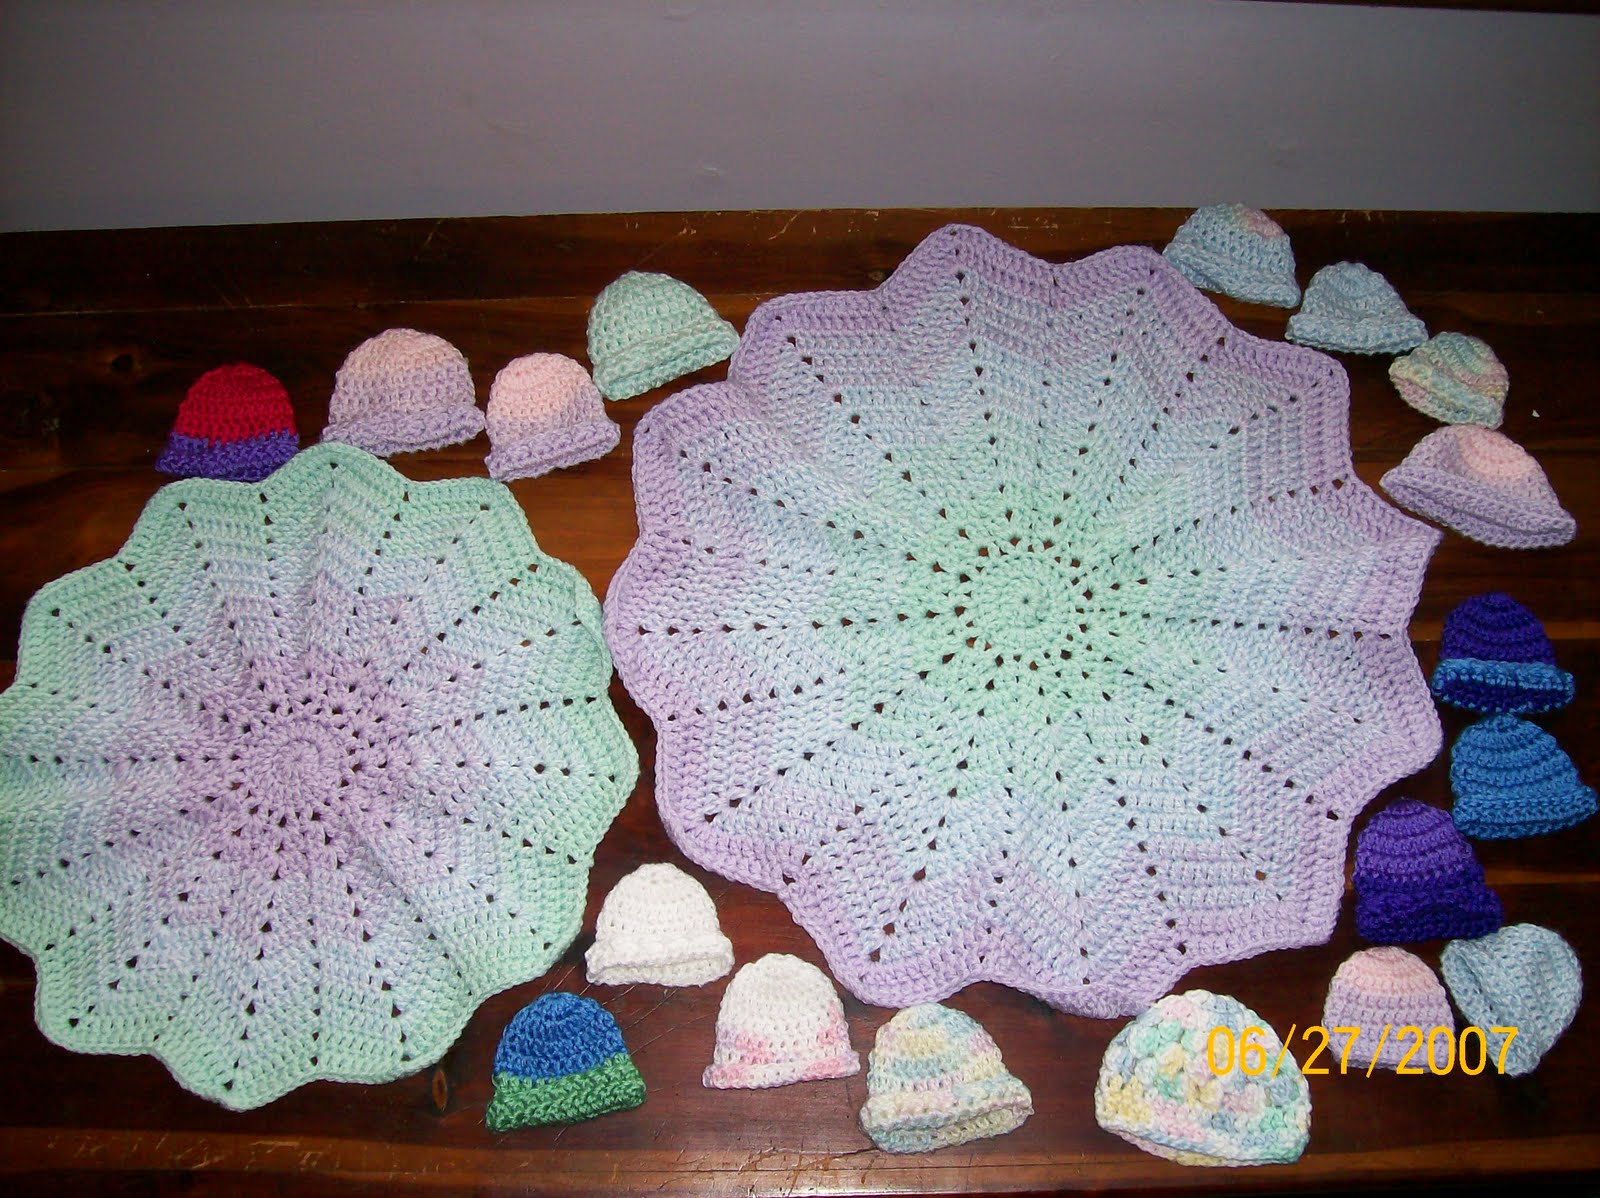 Crochet Pattern For Chevron Baby Afghan : My Crochet Ramblings